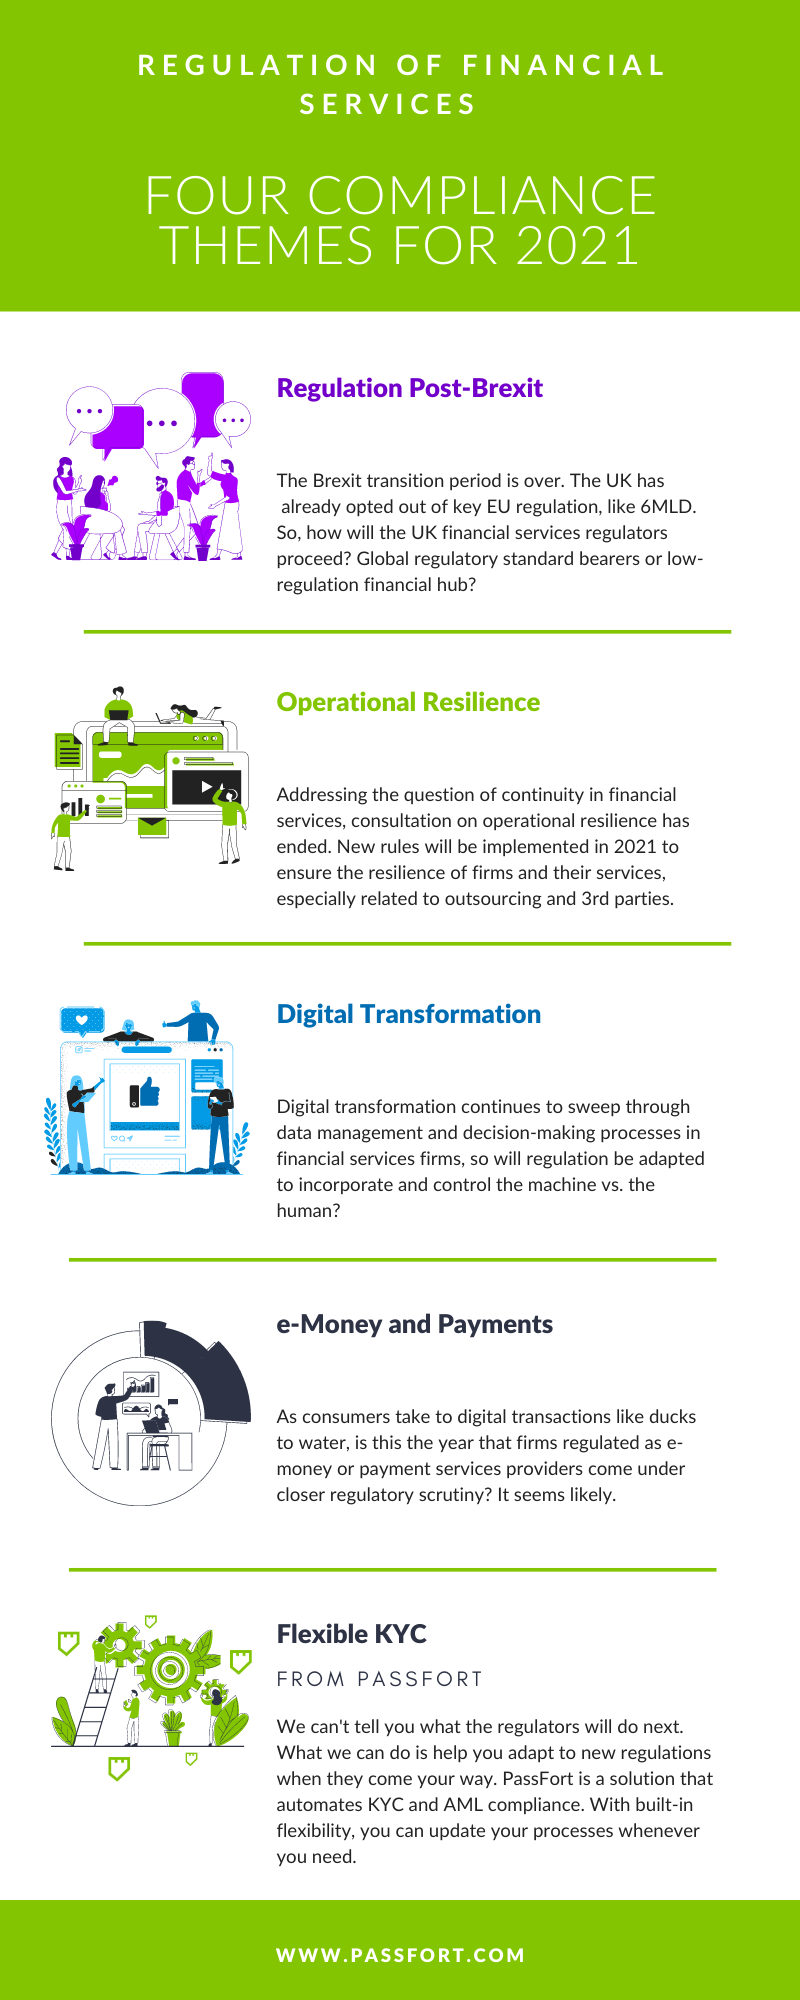 4 compliance themes for financial services in 2021